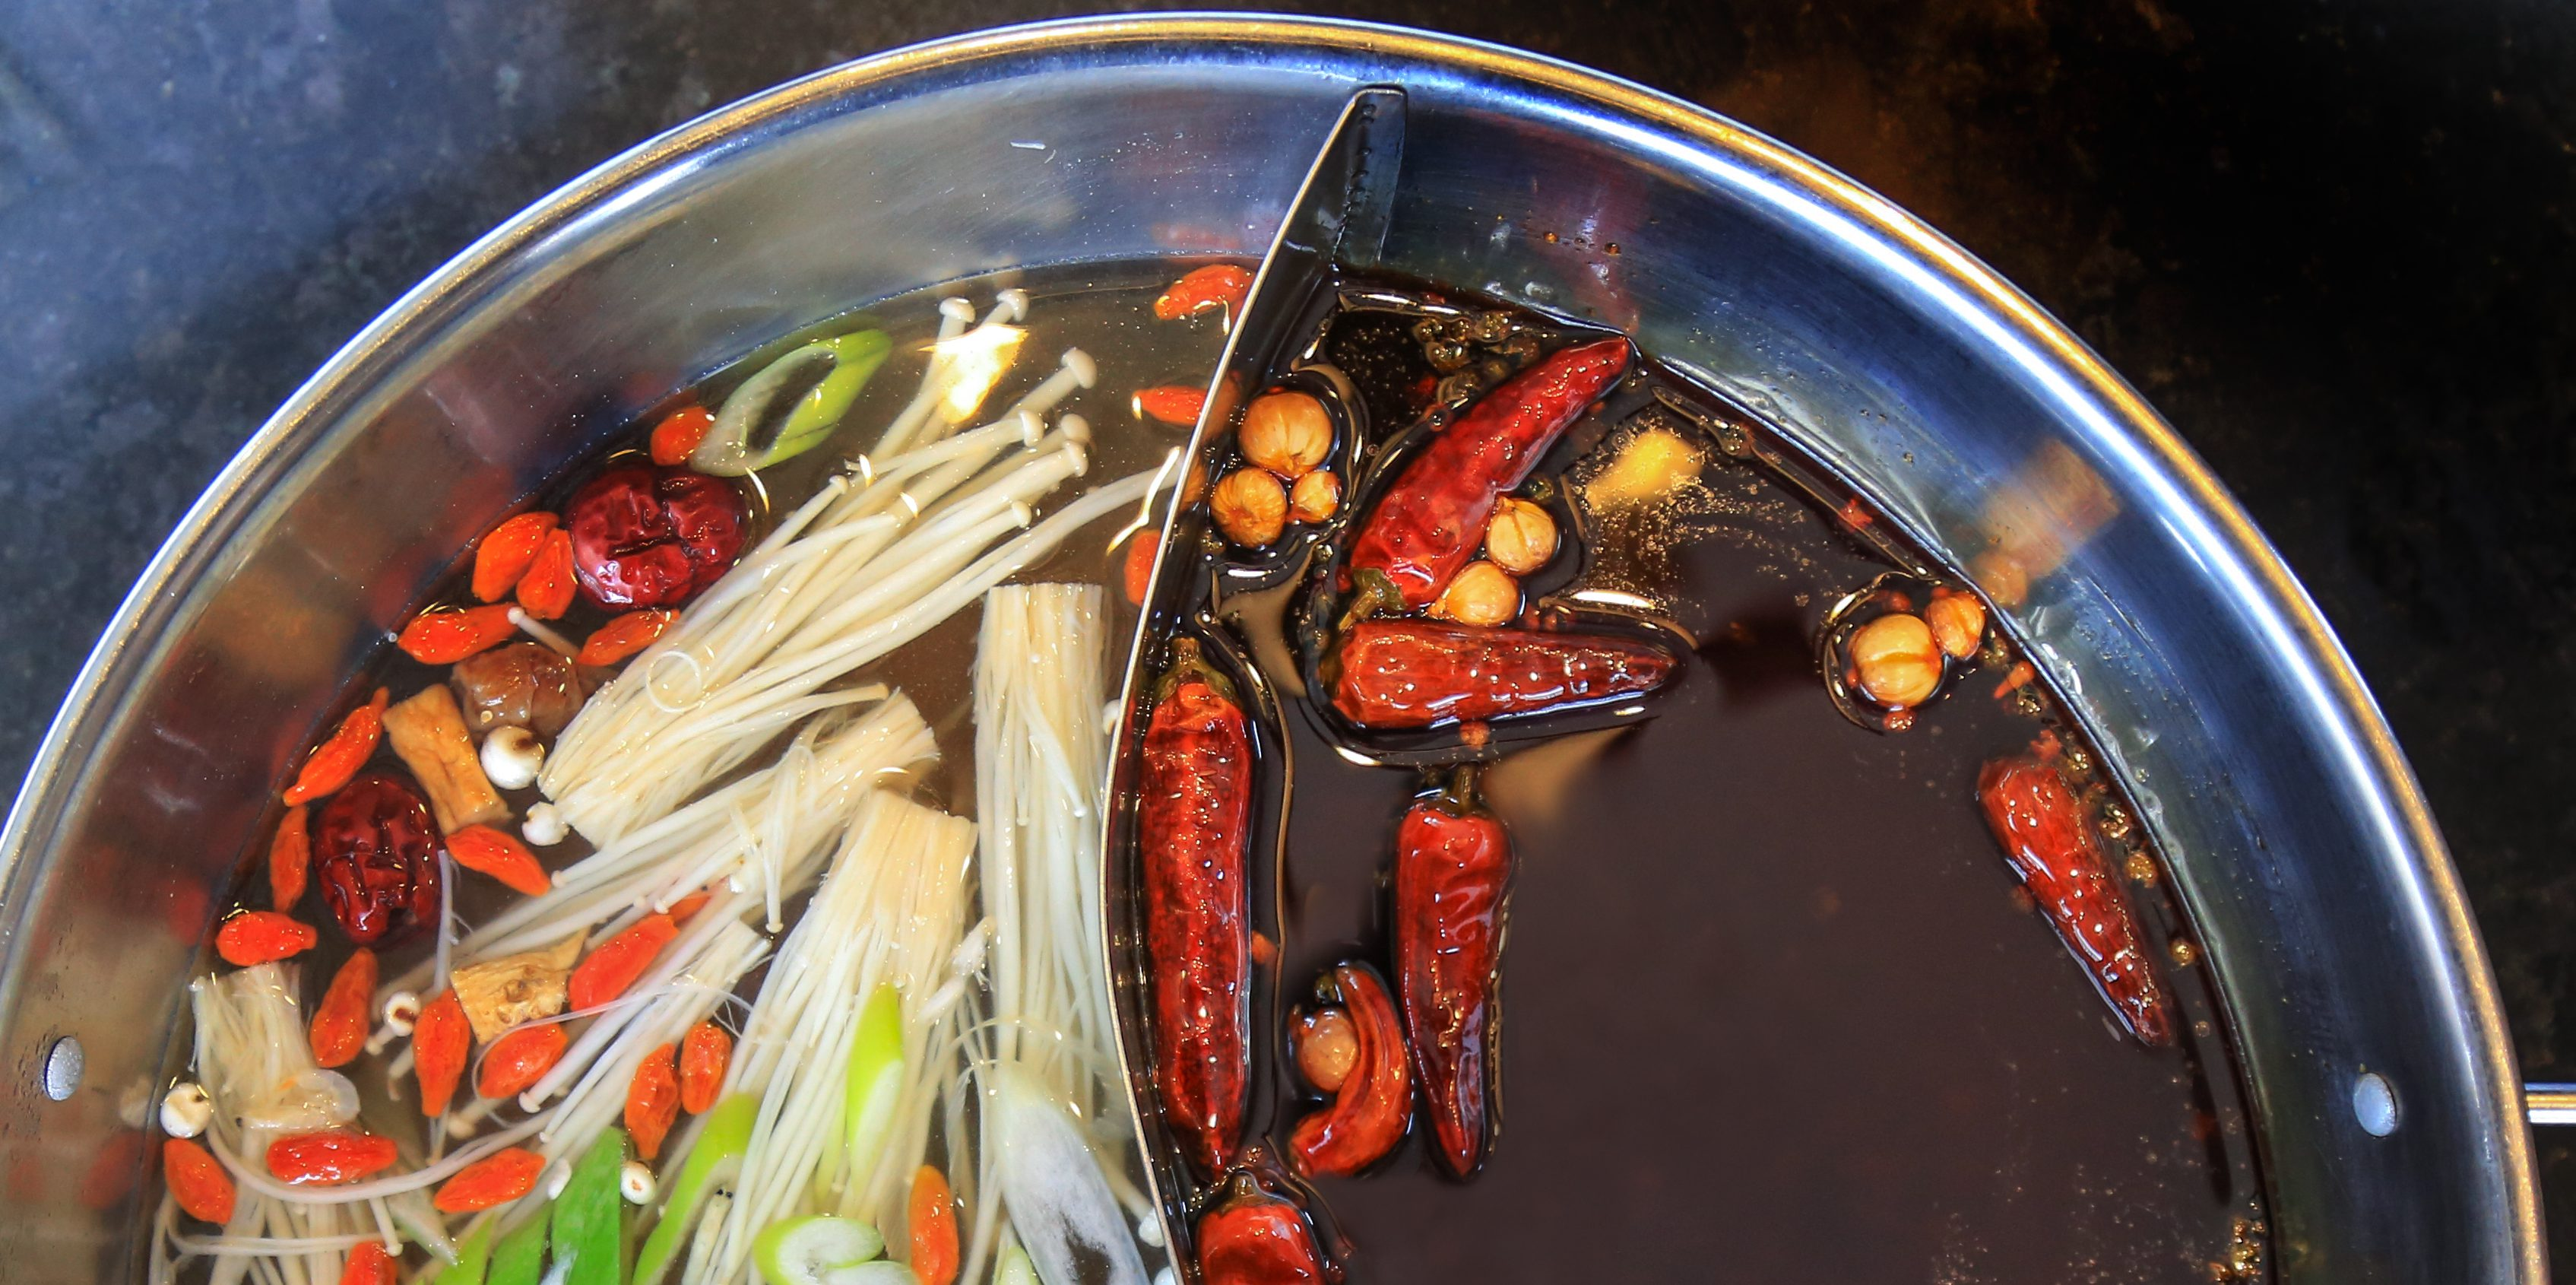 Chinese regional cuisine how to enjoy chongqing style hotpot at hotpot consists of 3 main elements hotpot broth food ingredients and dipping sauce which are the keys to tell the different styles of hotpot in forumfinder Images